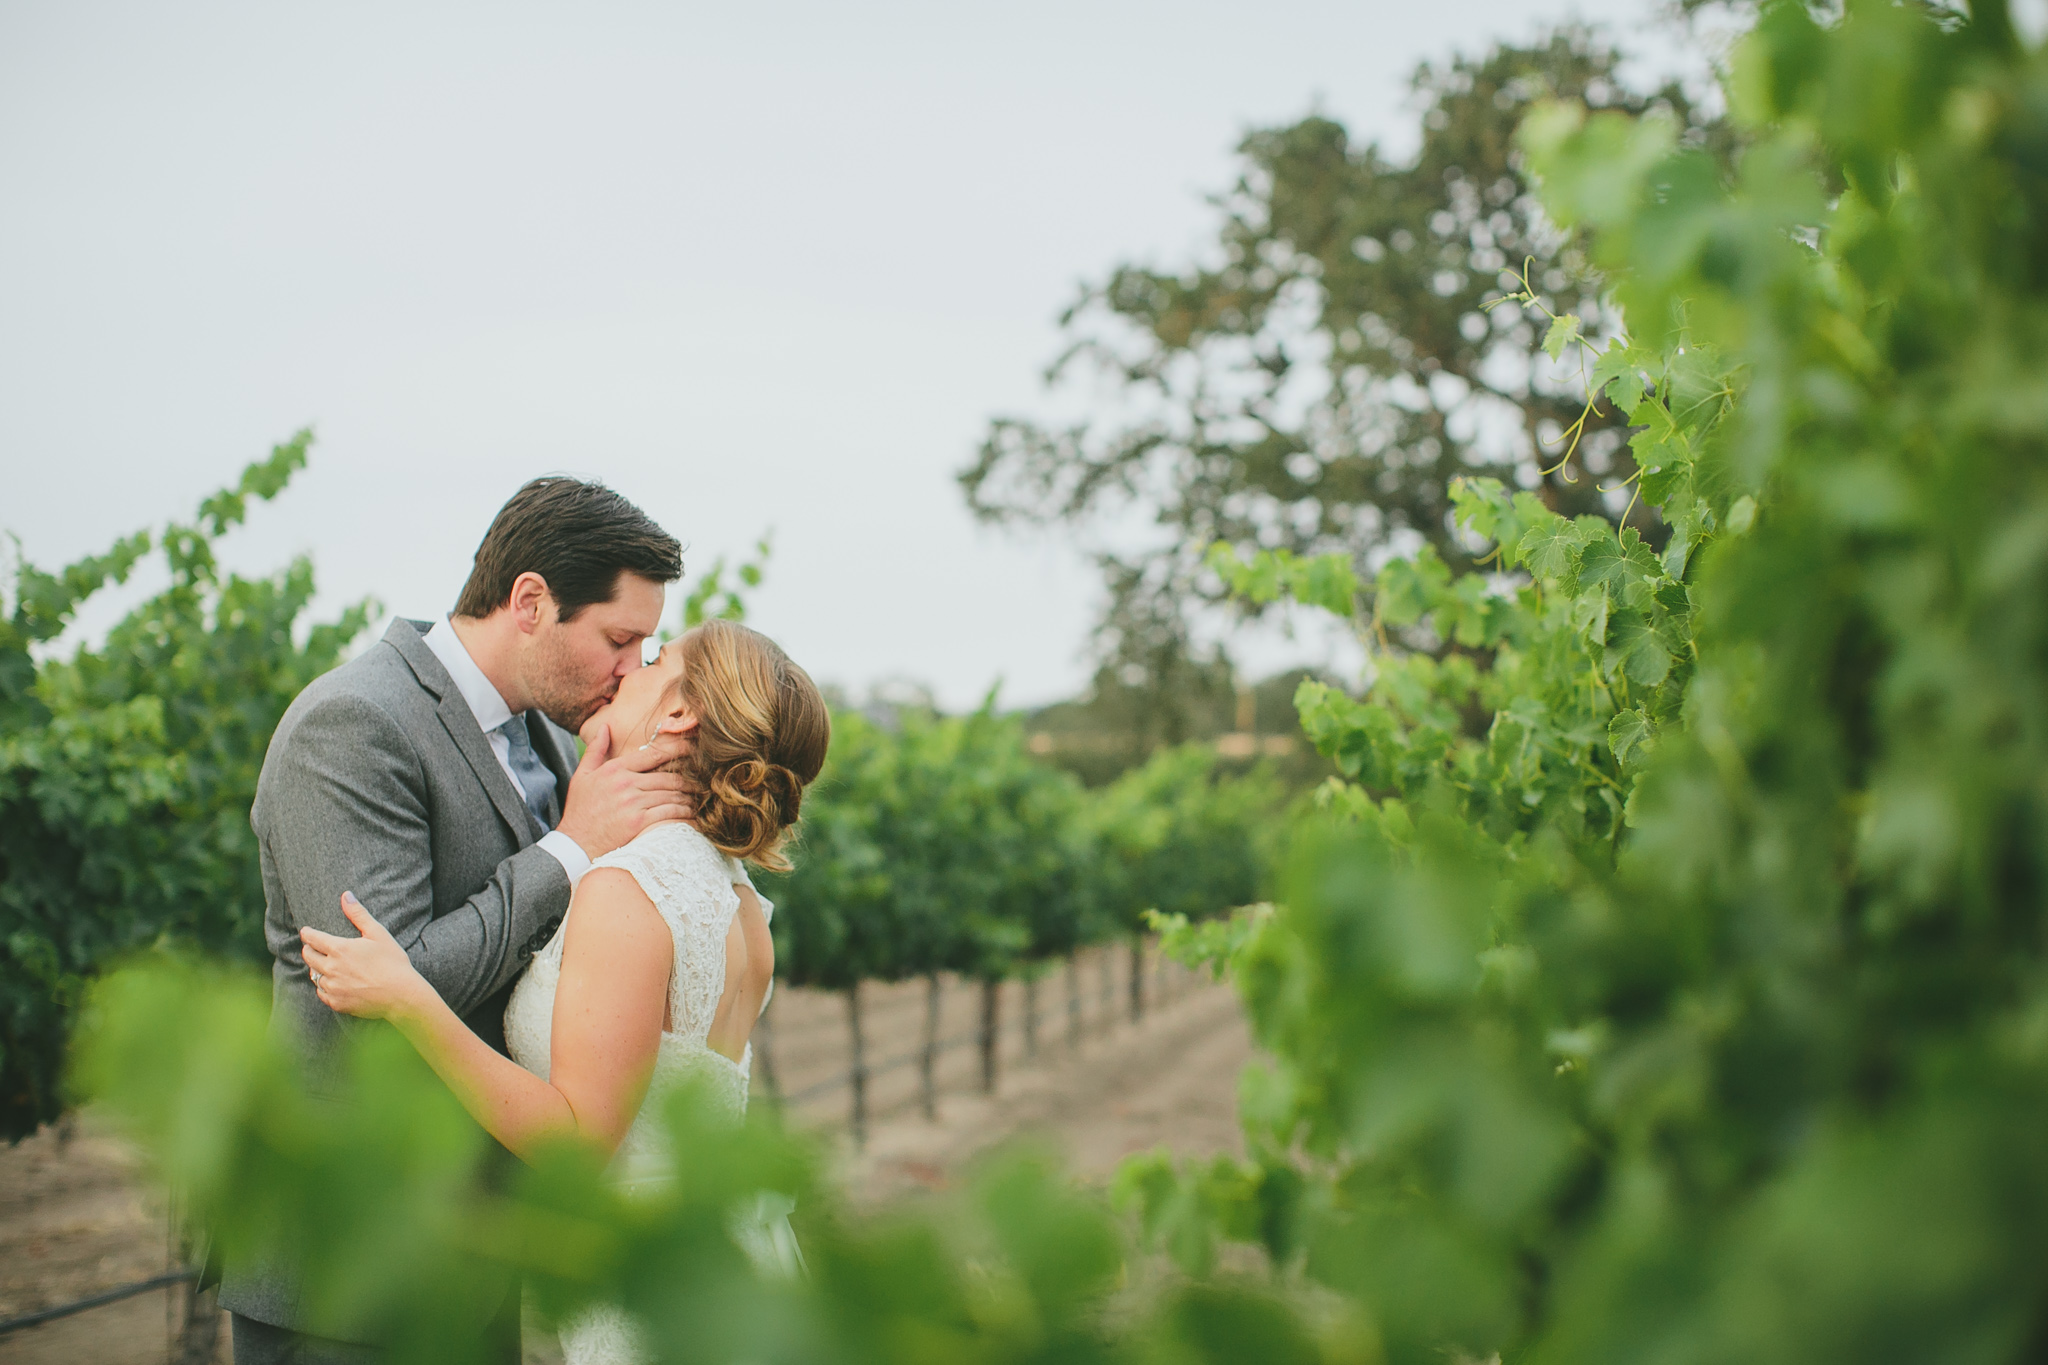 whitney+parker-WEB_BLOG-143